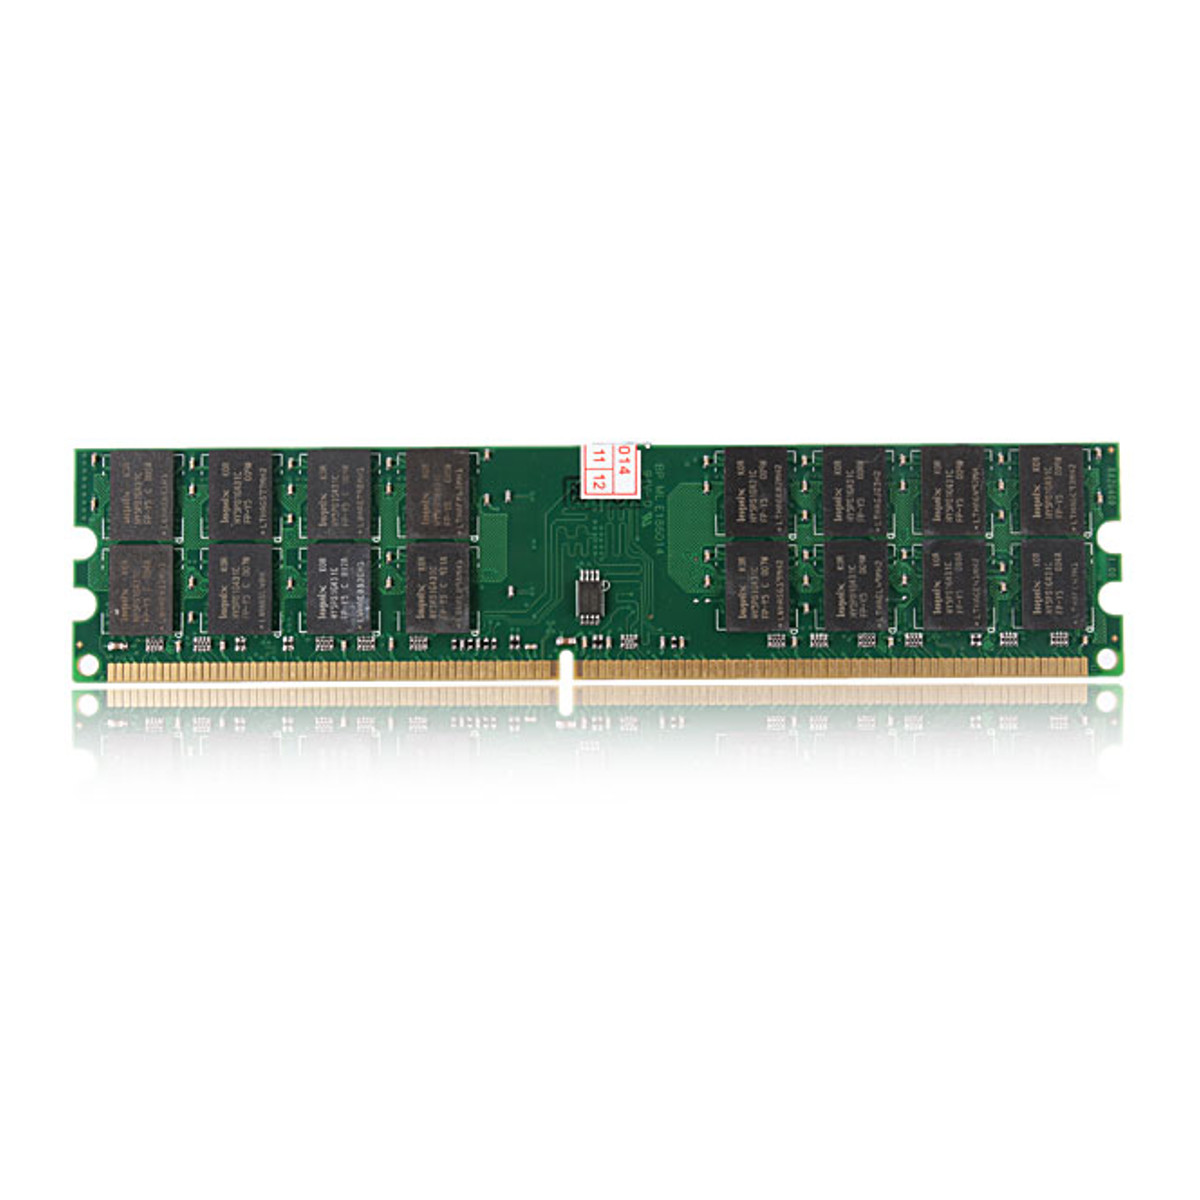 $8.99 for 4GB DDR2 PC2-6400 800MHz Deskt